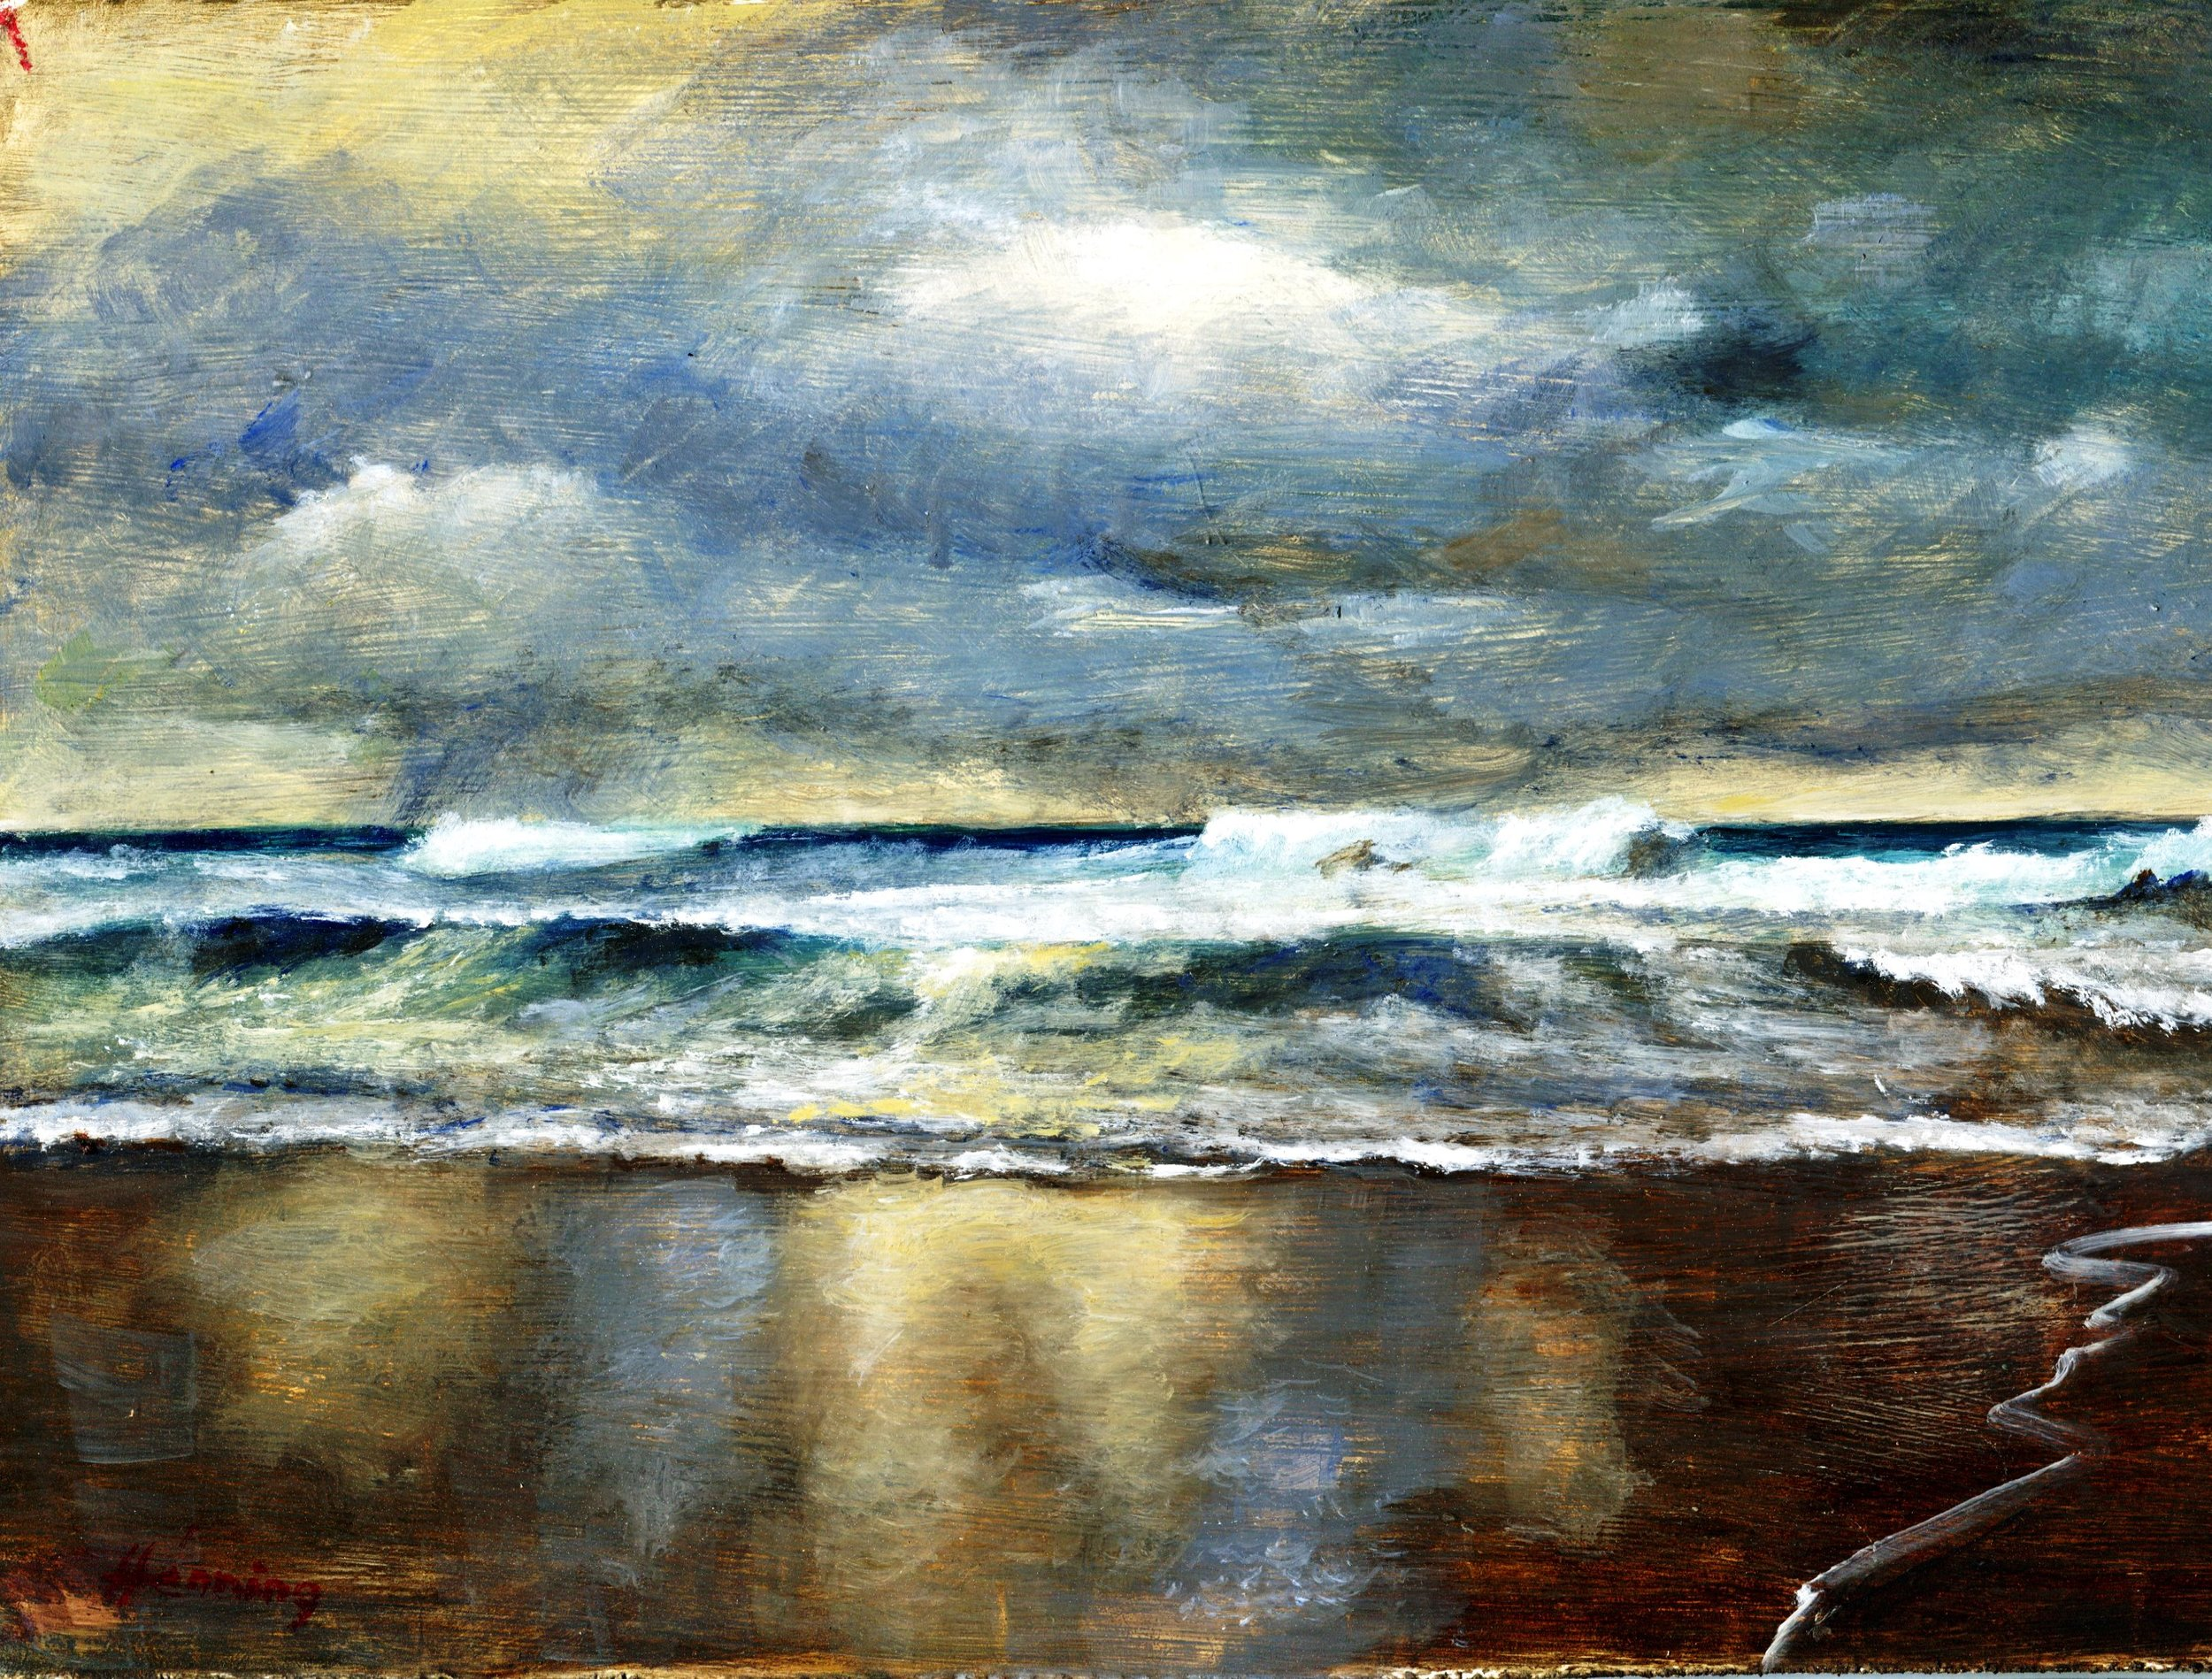 28A DENNIS HENNING, SEASCAPE, OIL ON BOARD